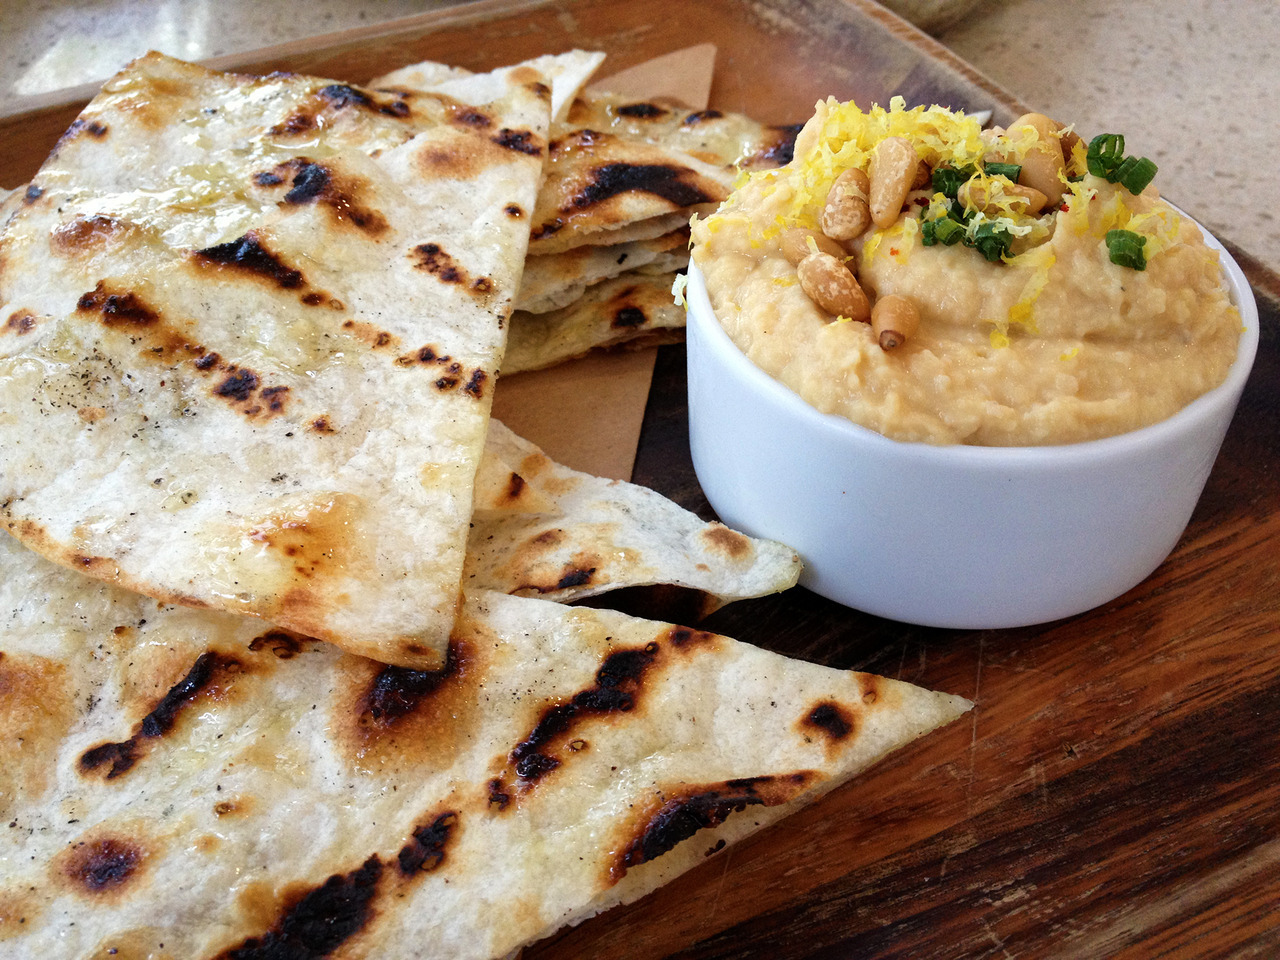 Surprisingly tasty hummus platter from Tudor House. -Gastrodamus